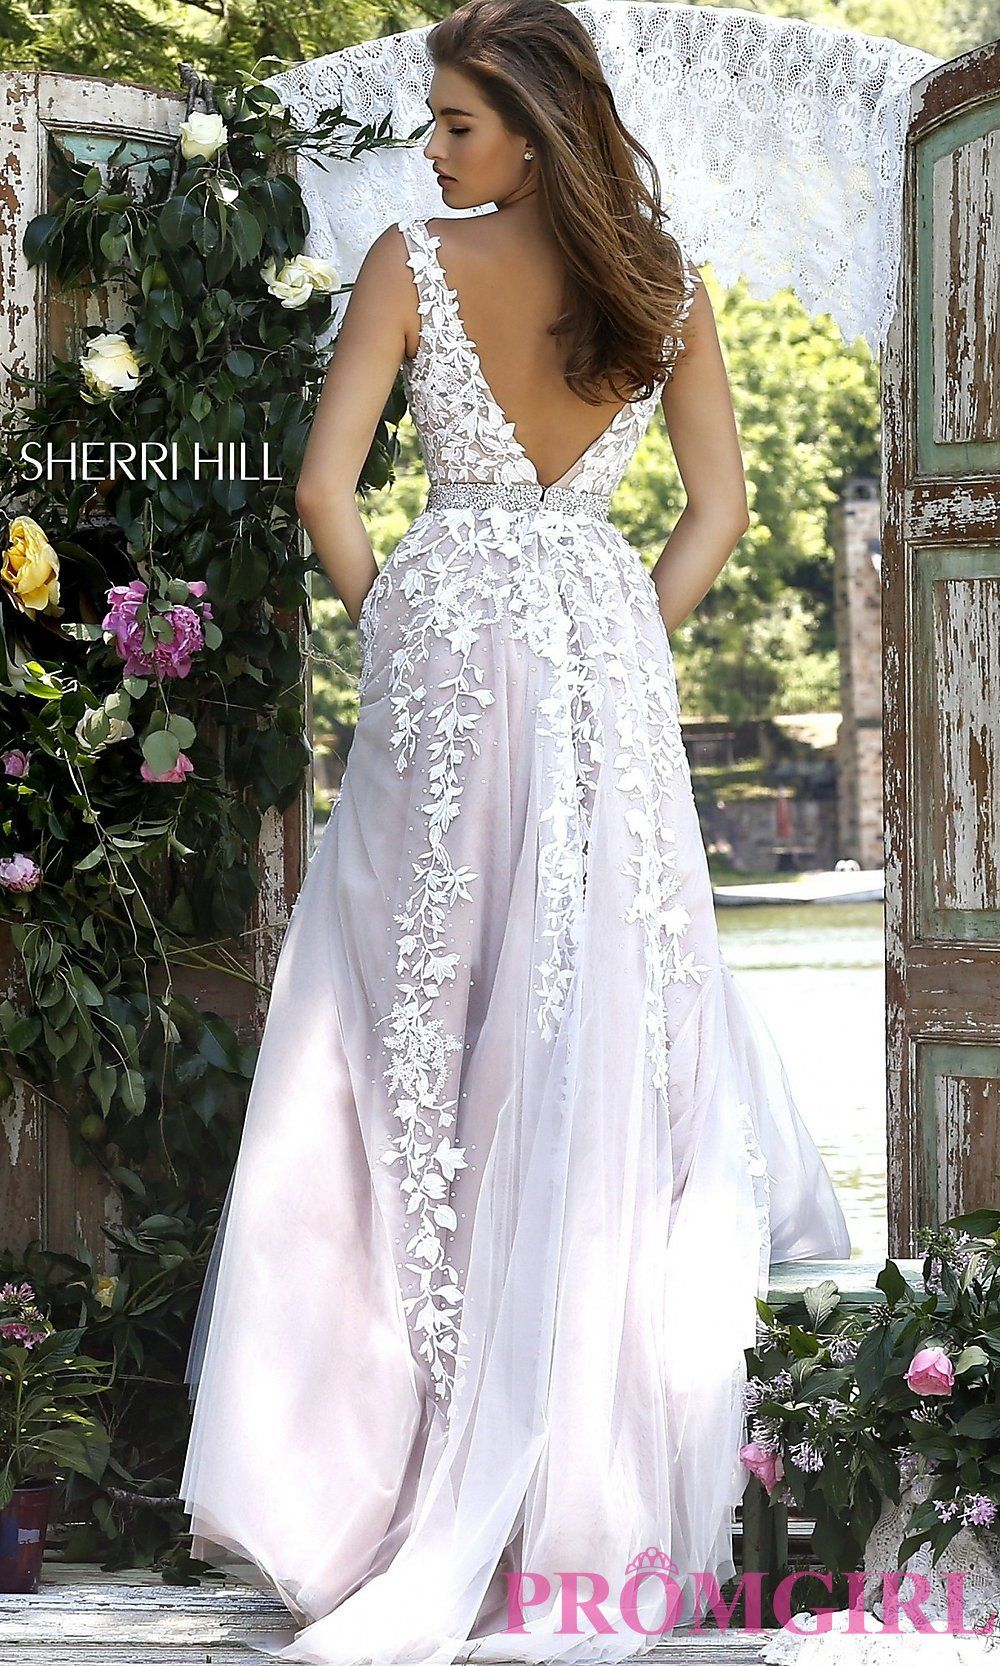 I Like Style SH-11335 From PromGirl.com, Do You Like